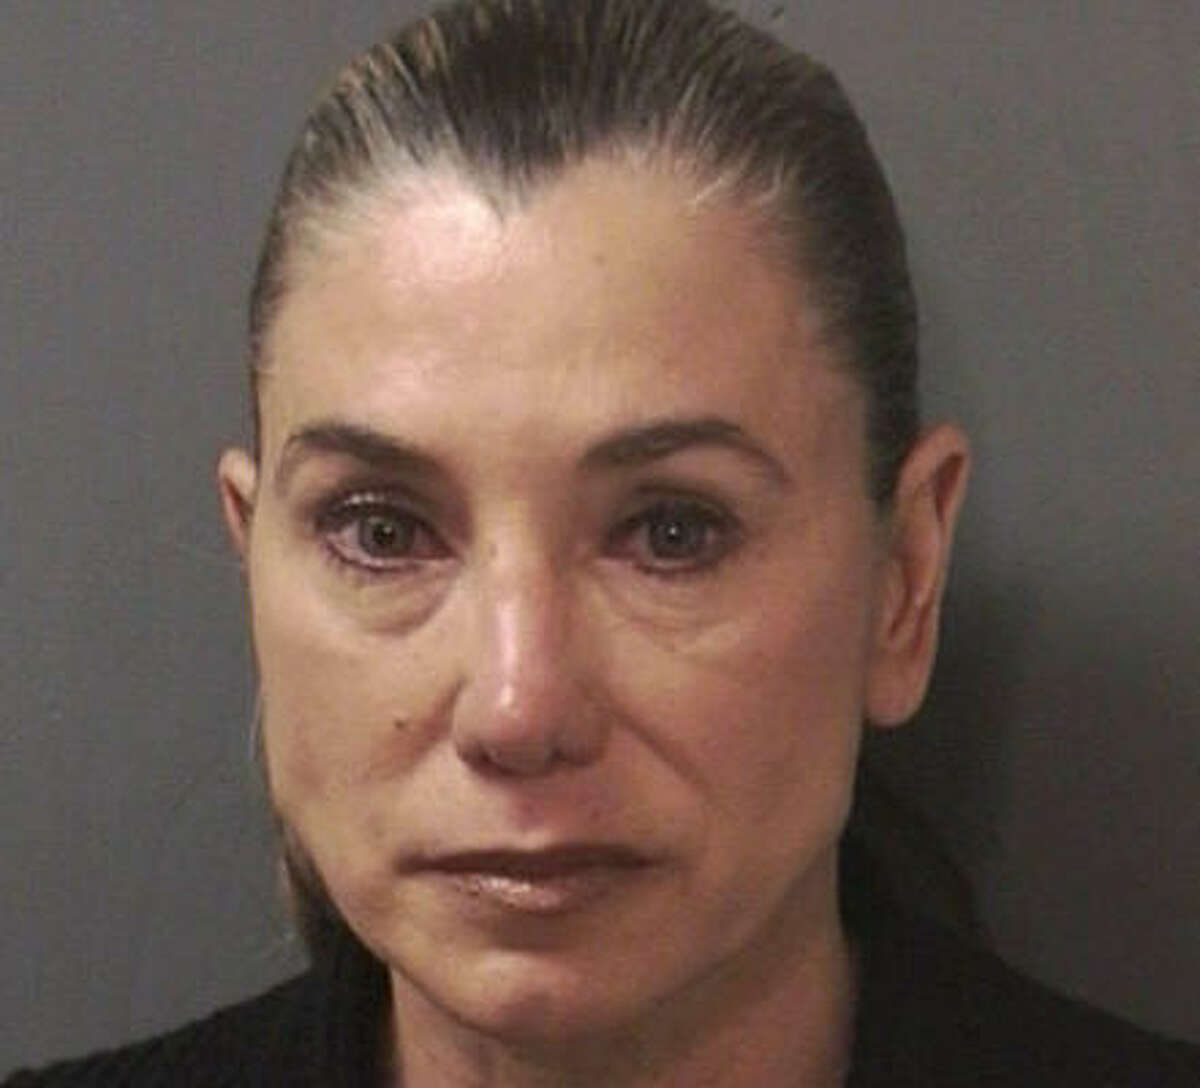 Vilma Buchala, 45, has been charged with failure to stop and render aid. She was released from custody after posting $5,000 bond on Monday.